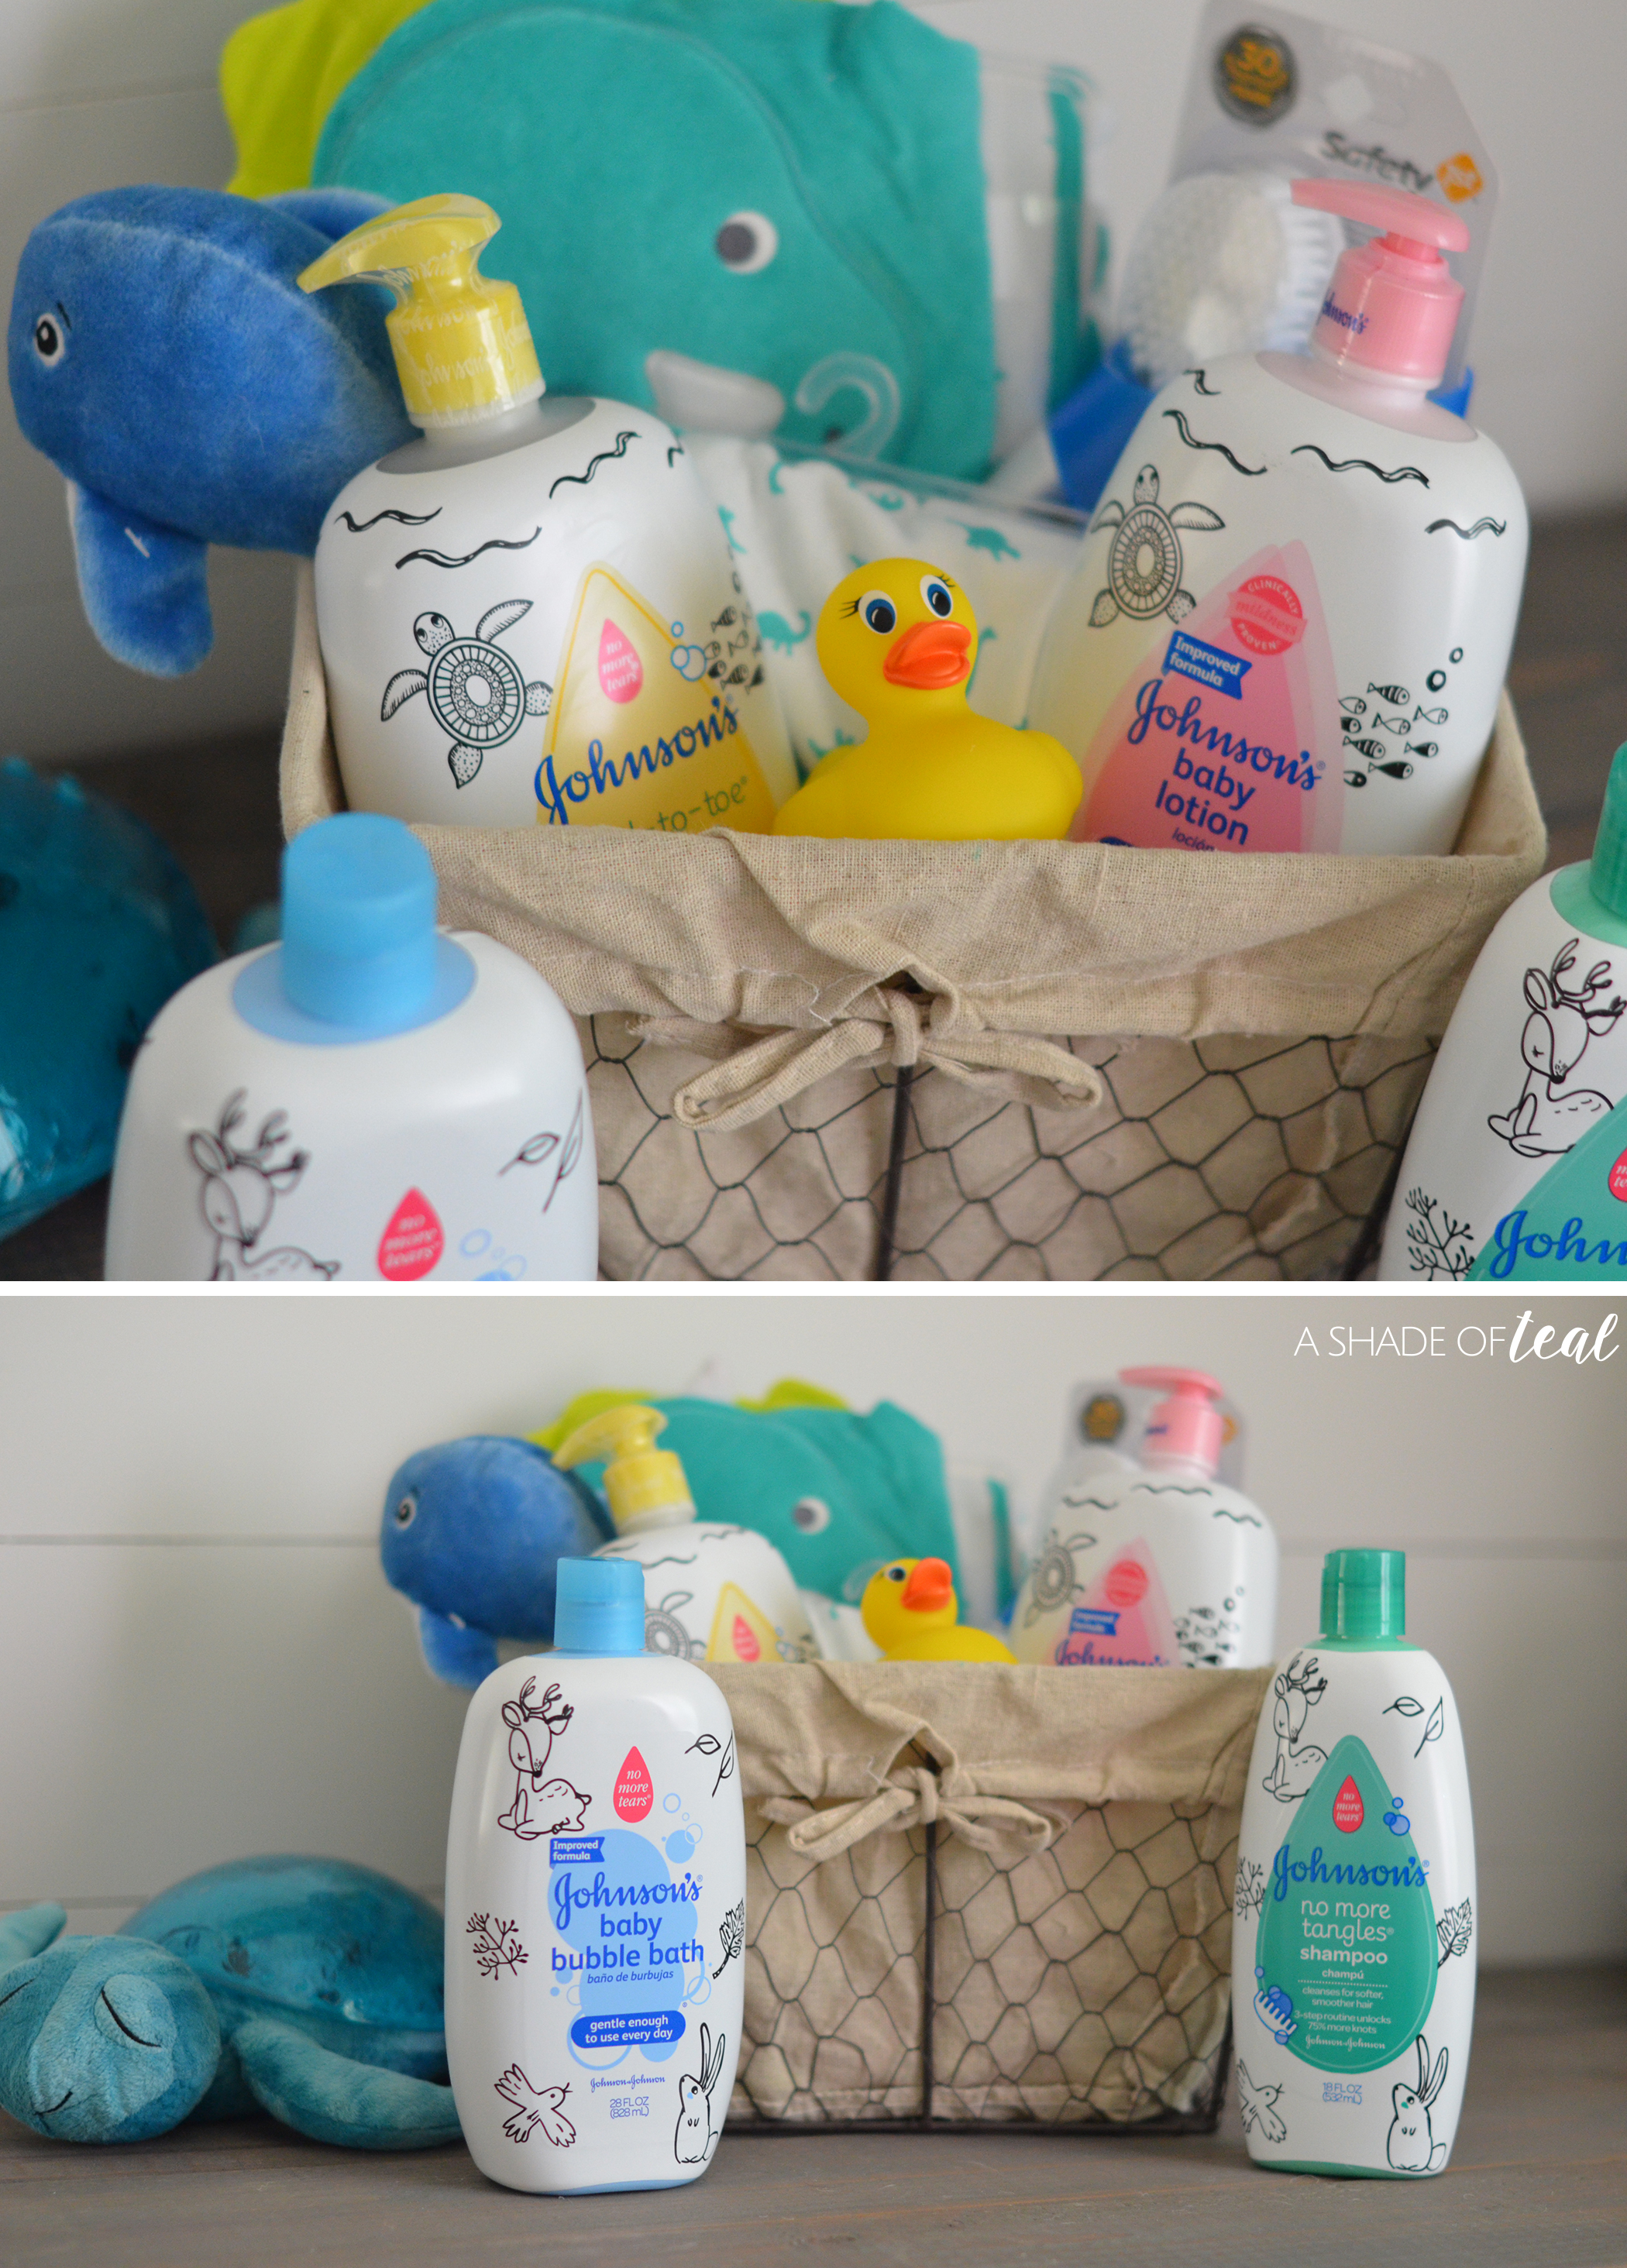 Make a Baby Bath time Kit!